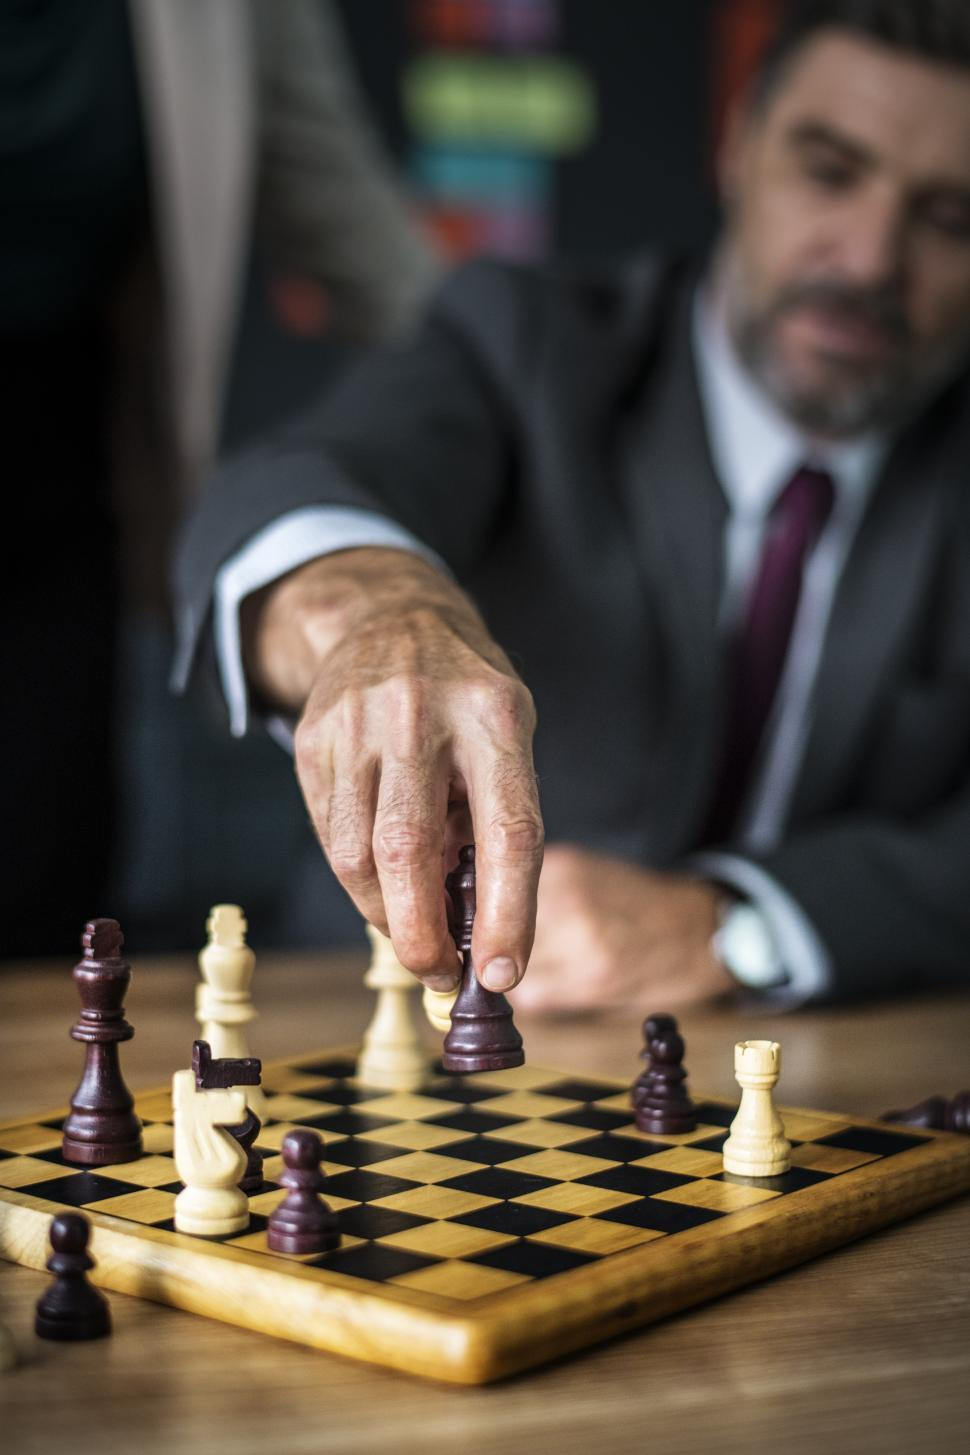 Download Free Stock Photo of Close up of a business man playing chess